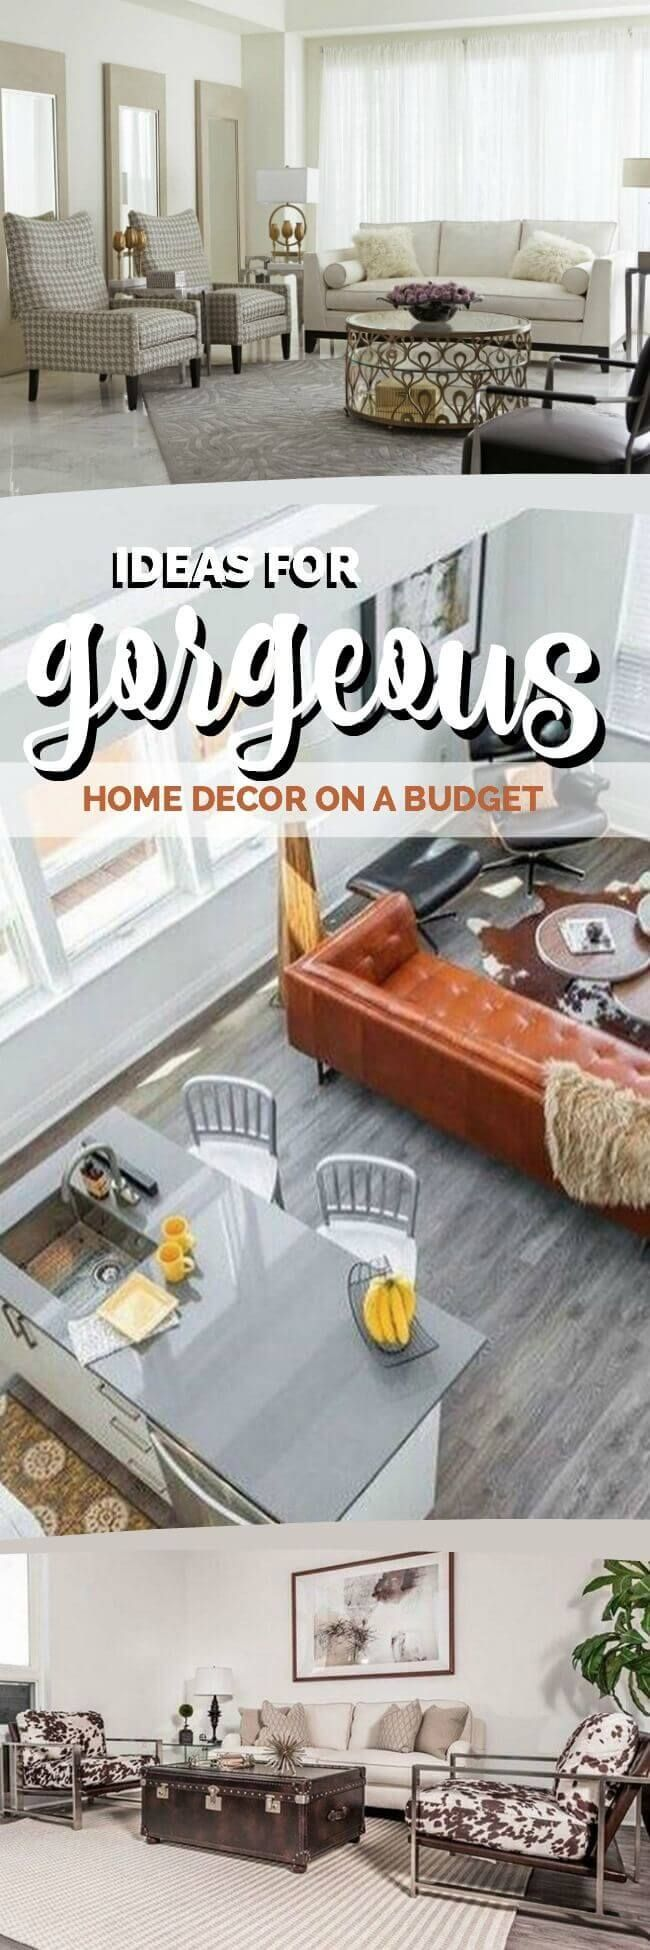 living spaces home furniture. ideas for gorgeous home decor on a budget diy decorliving spaces budgetarchitecture living furniture